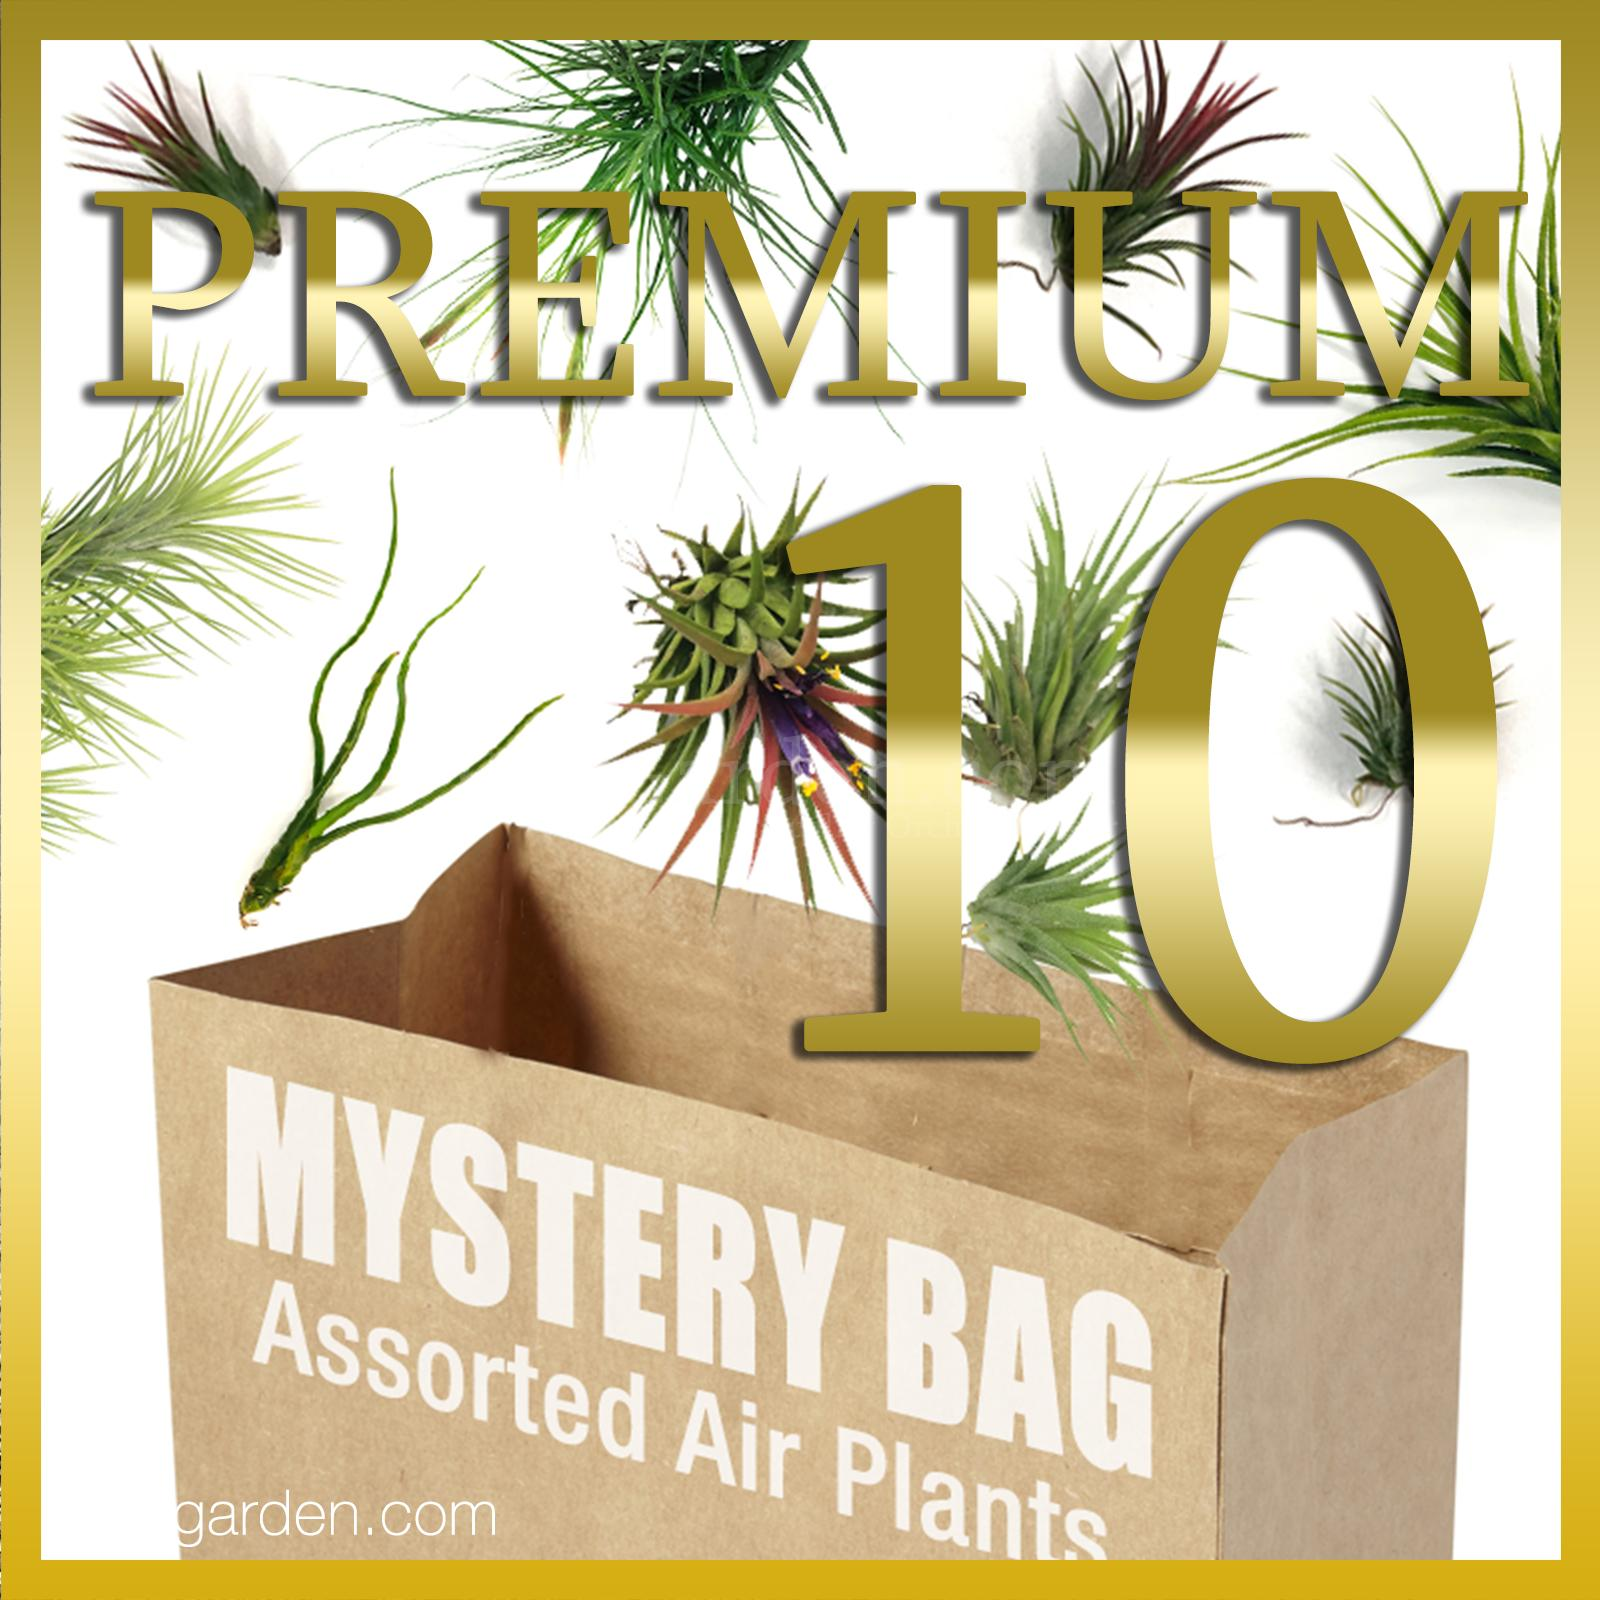 Tillandsia Premium Mystery Pack of 10 / Assorted Air Plants